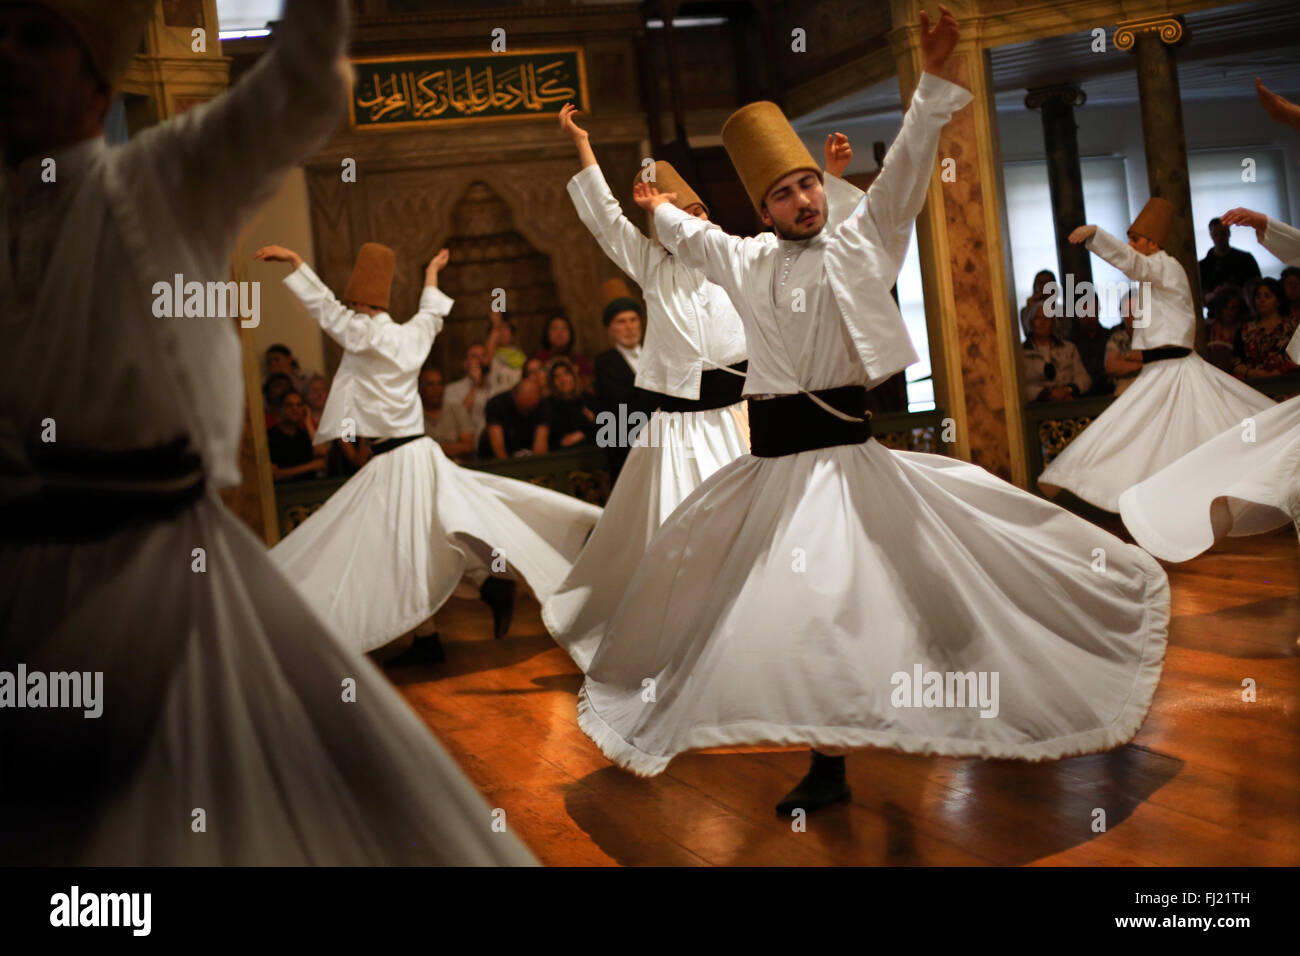 Whirling Dervishes perform at Hodjapasha Culture Centre, Istanbul - Stock Image